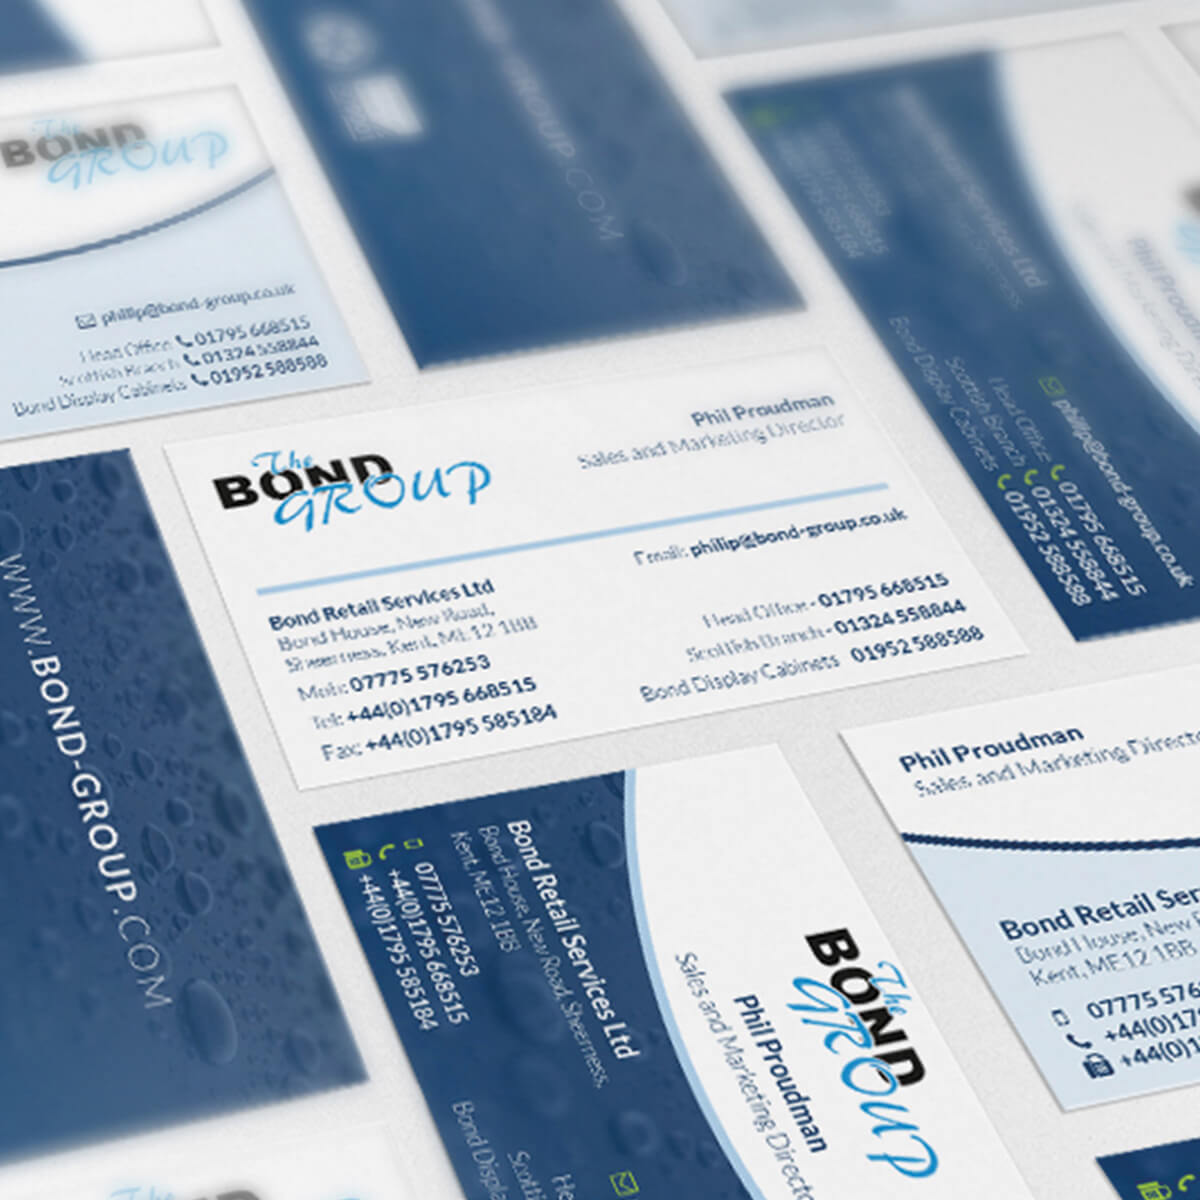 The Bond Group Business Cards